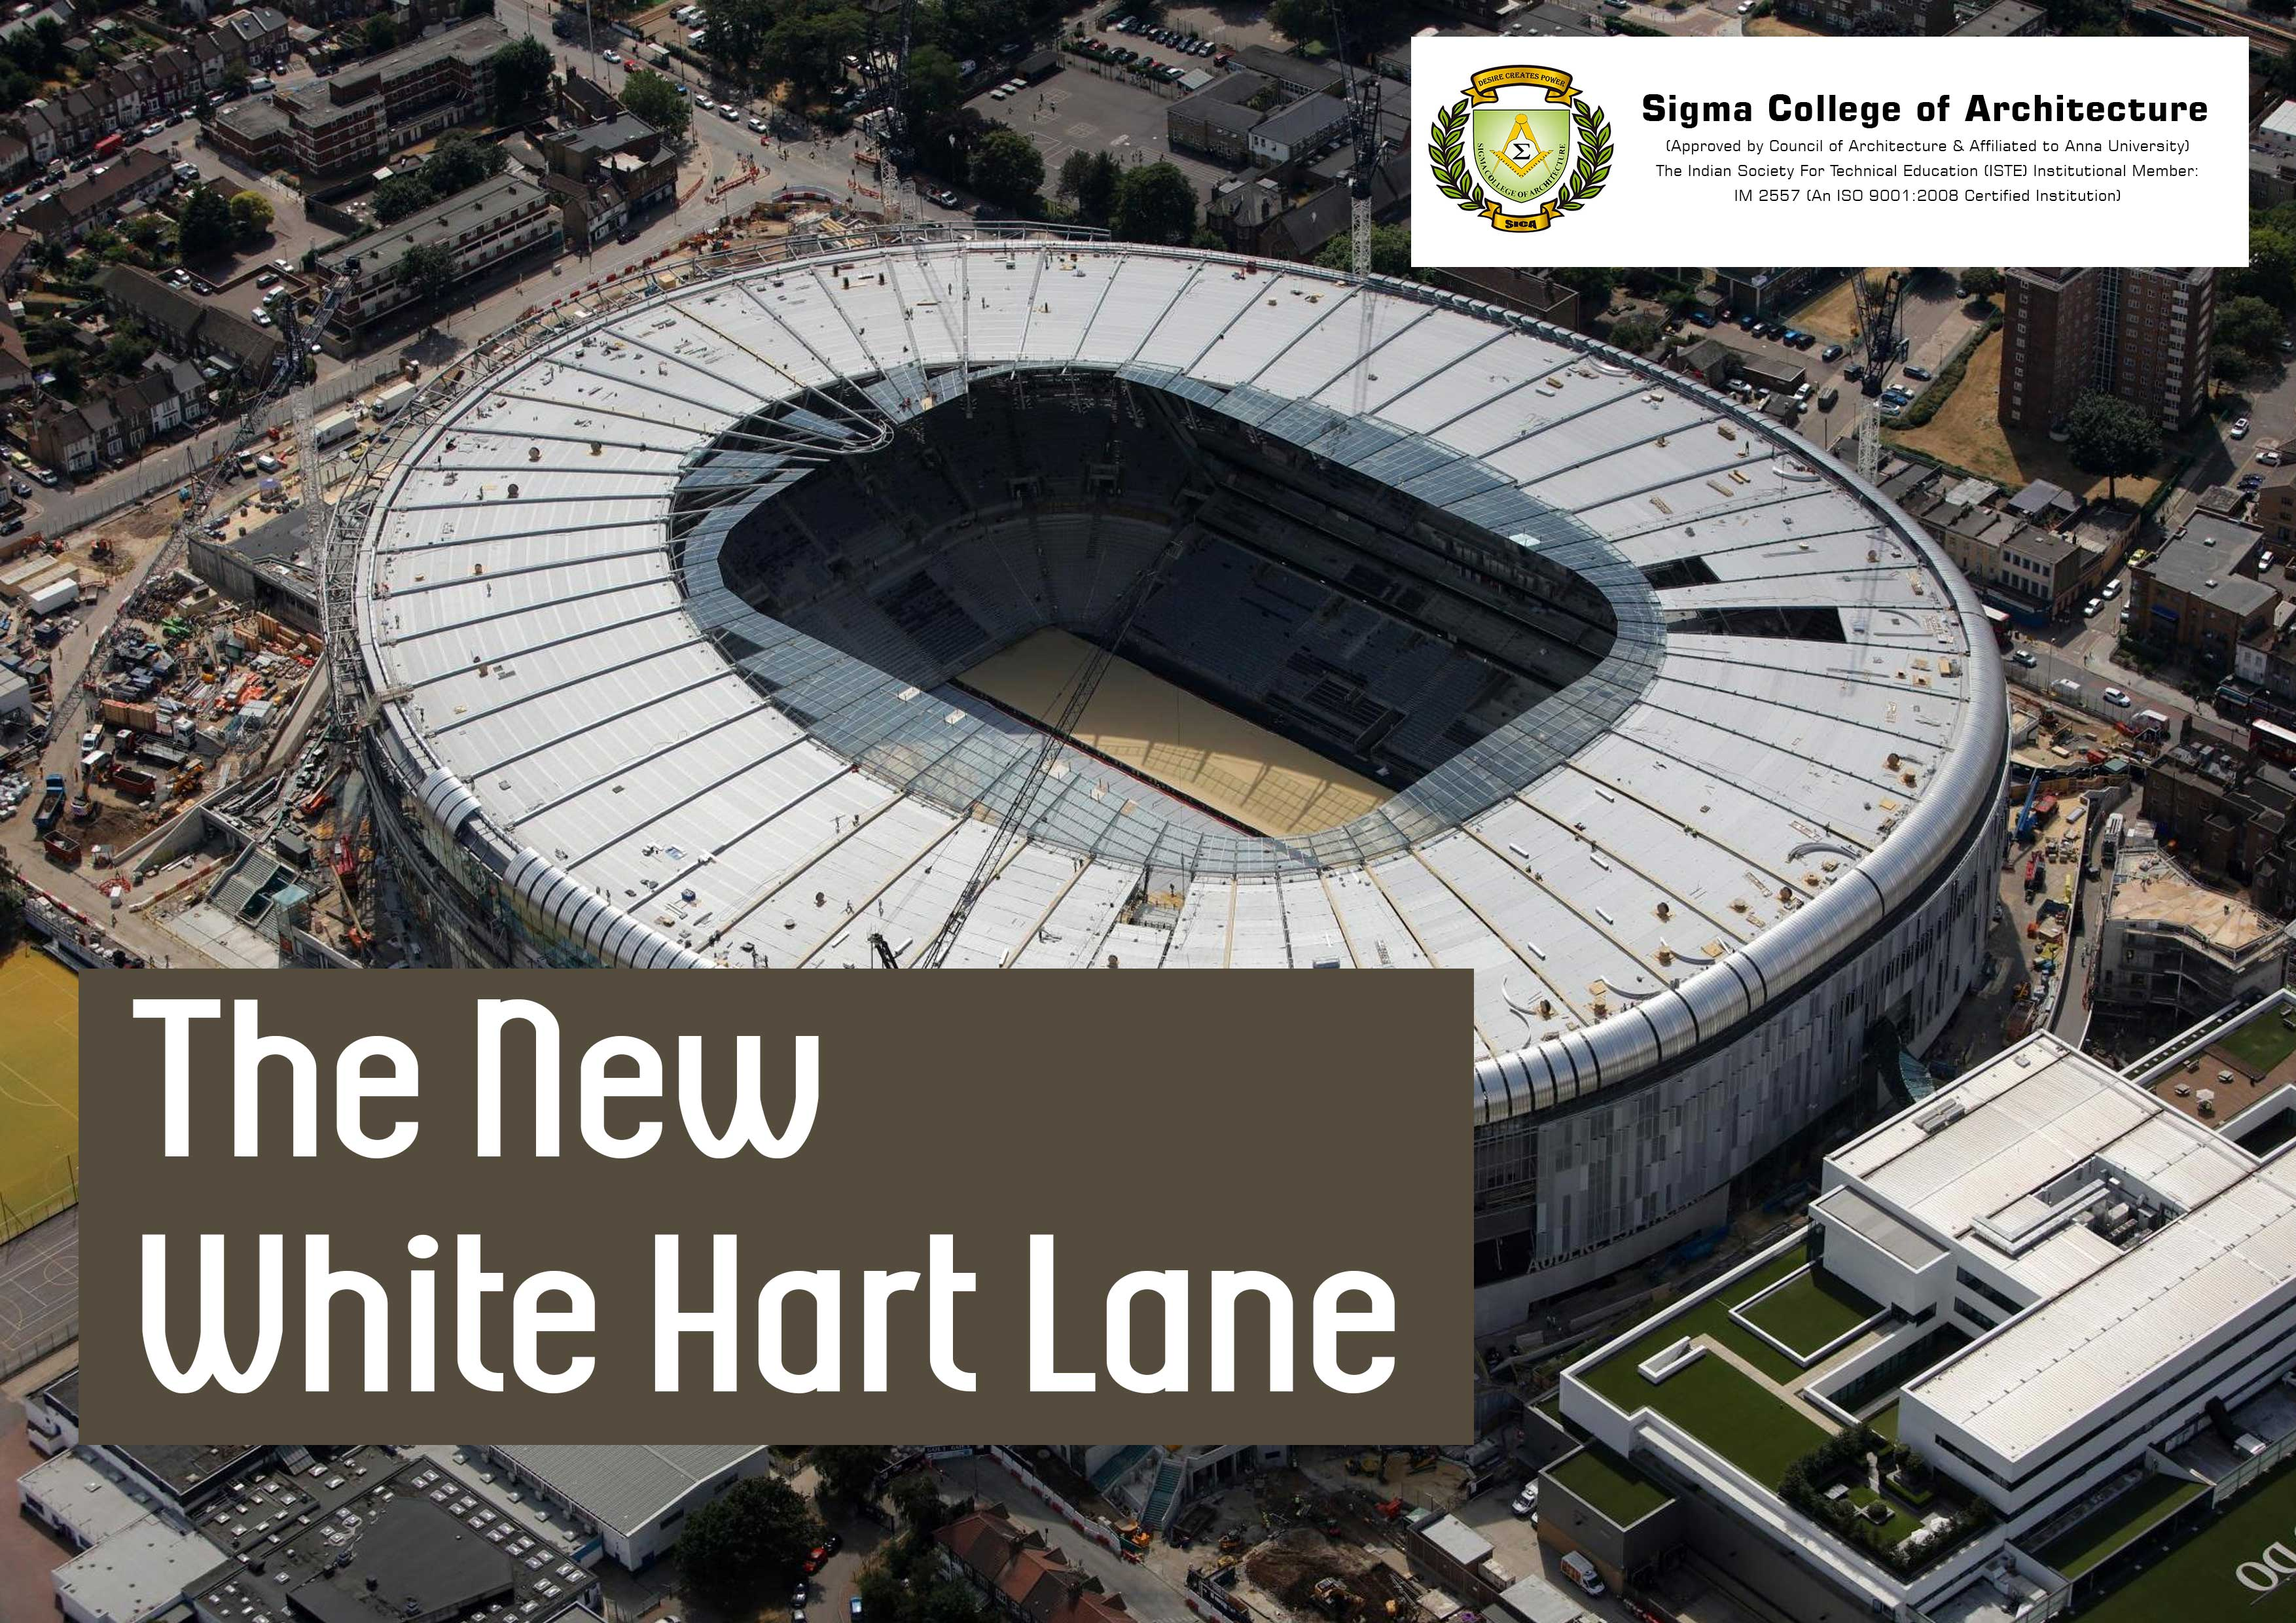 The New White Hart Lane